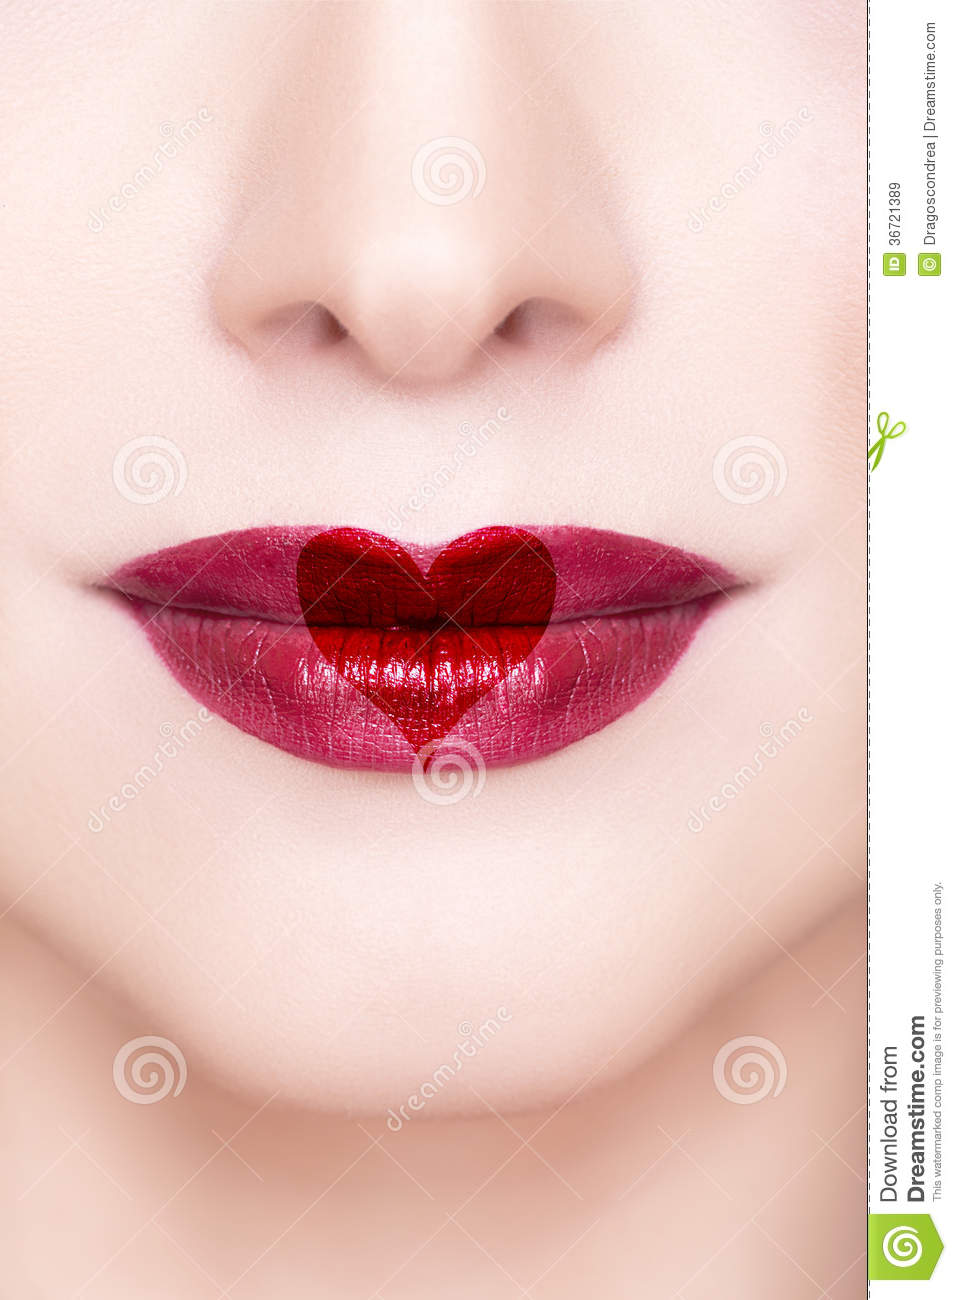 Red Lips With Heart Shape Royalty Free Stock Images - Image 36721389